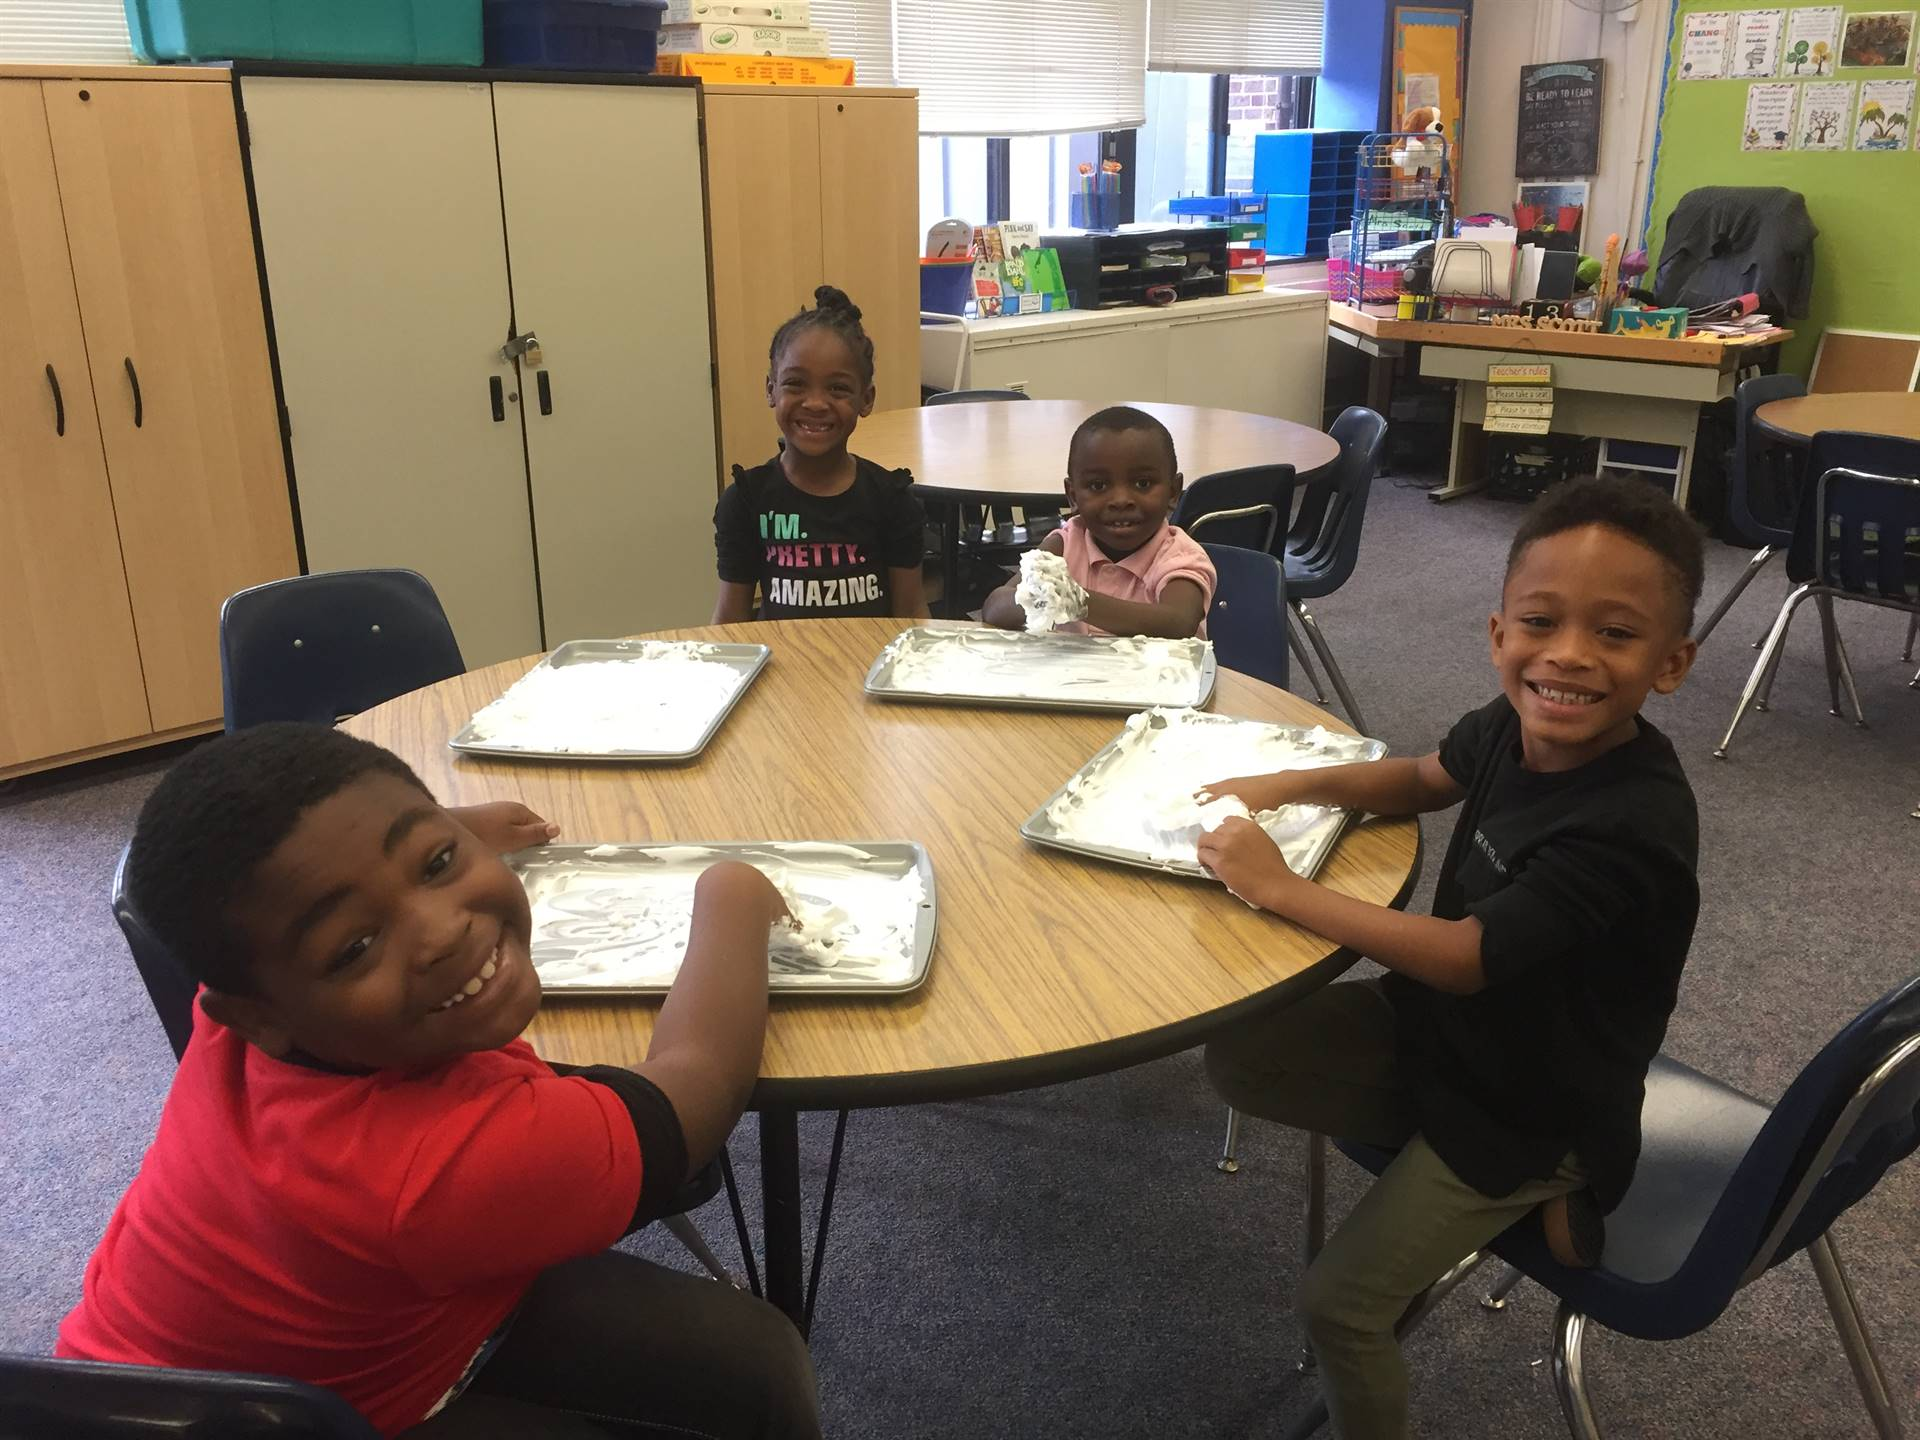 1st grade students practice their letters in shaving cream!